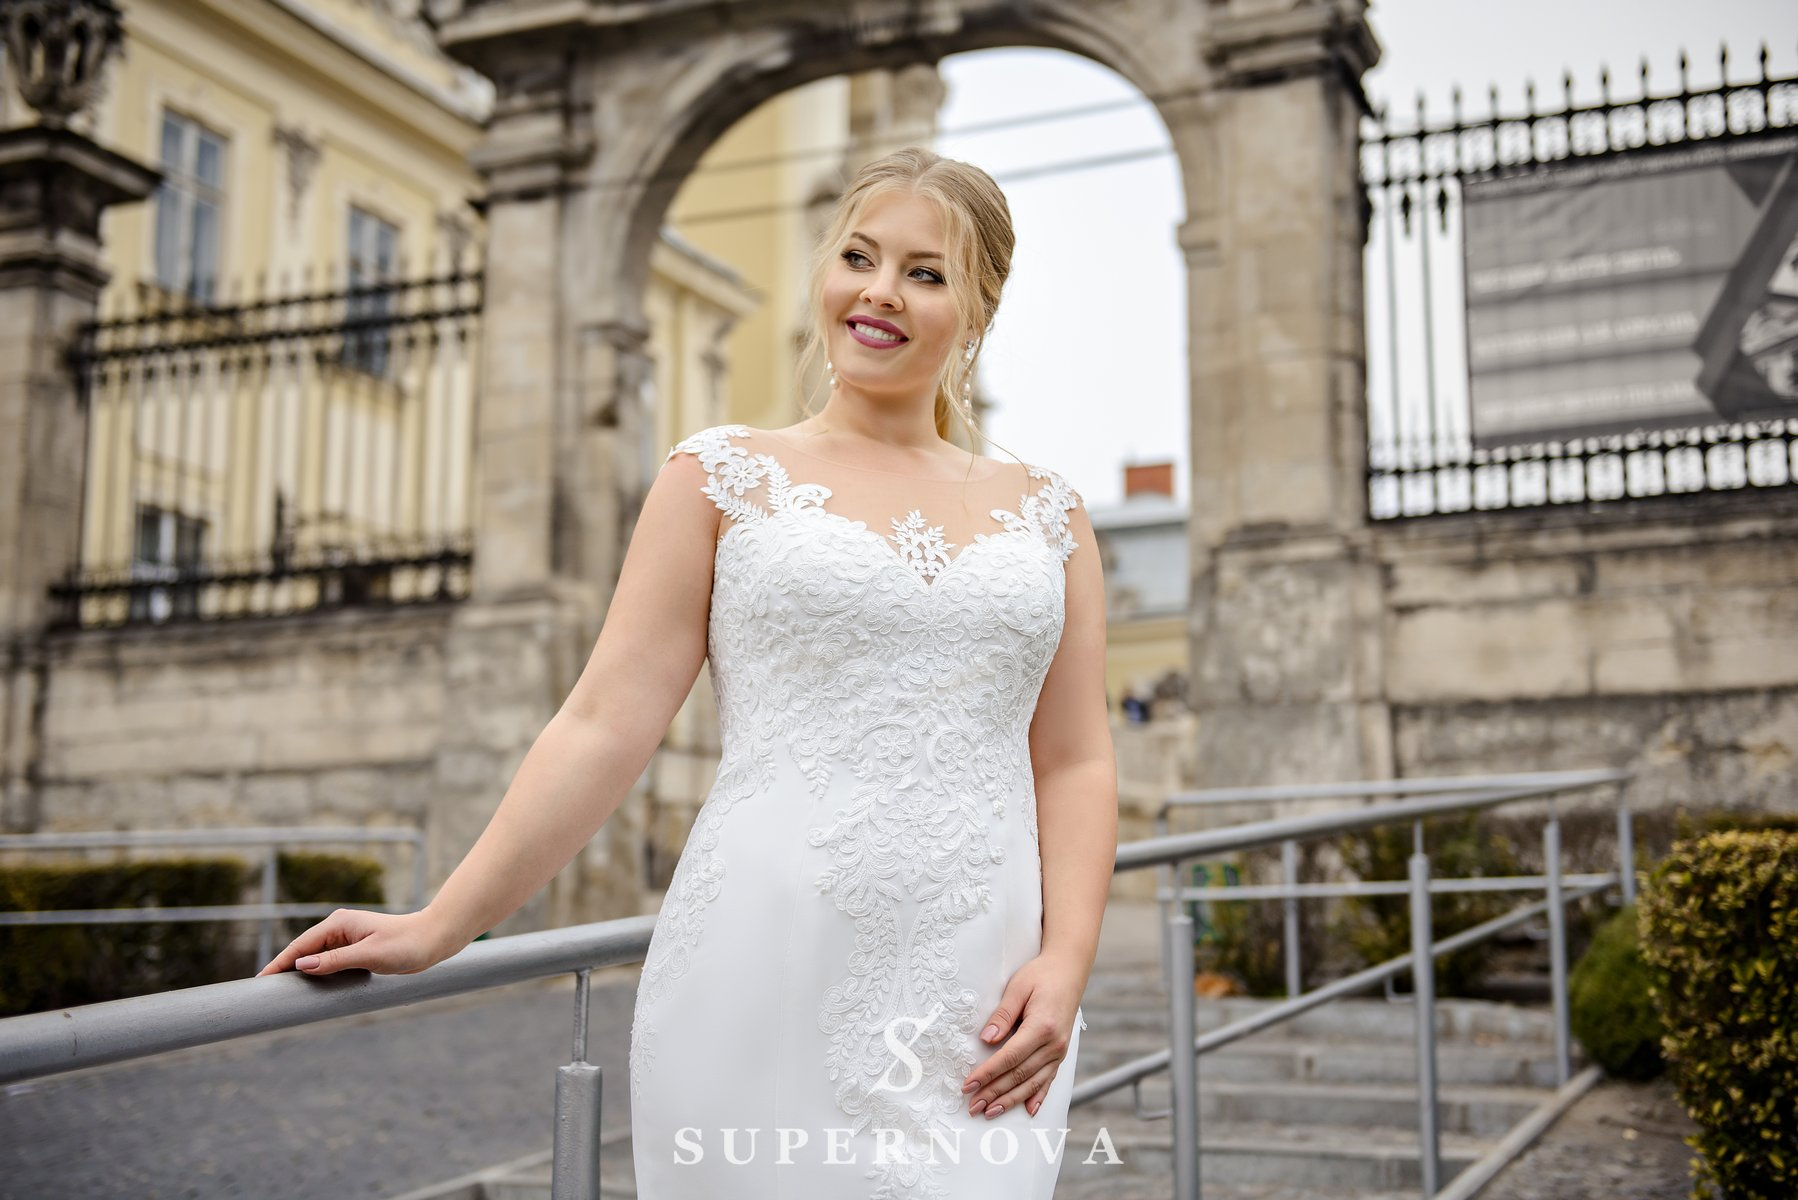 Plus size well-fitting wedding dress on wholesale from SuperNova-1